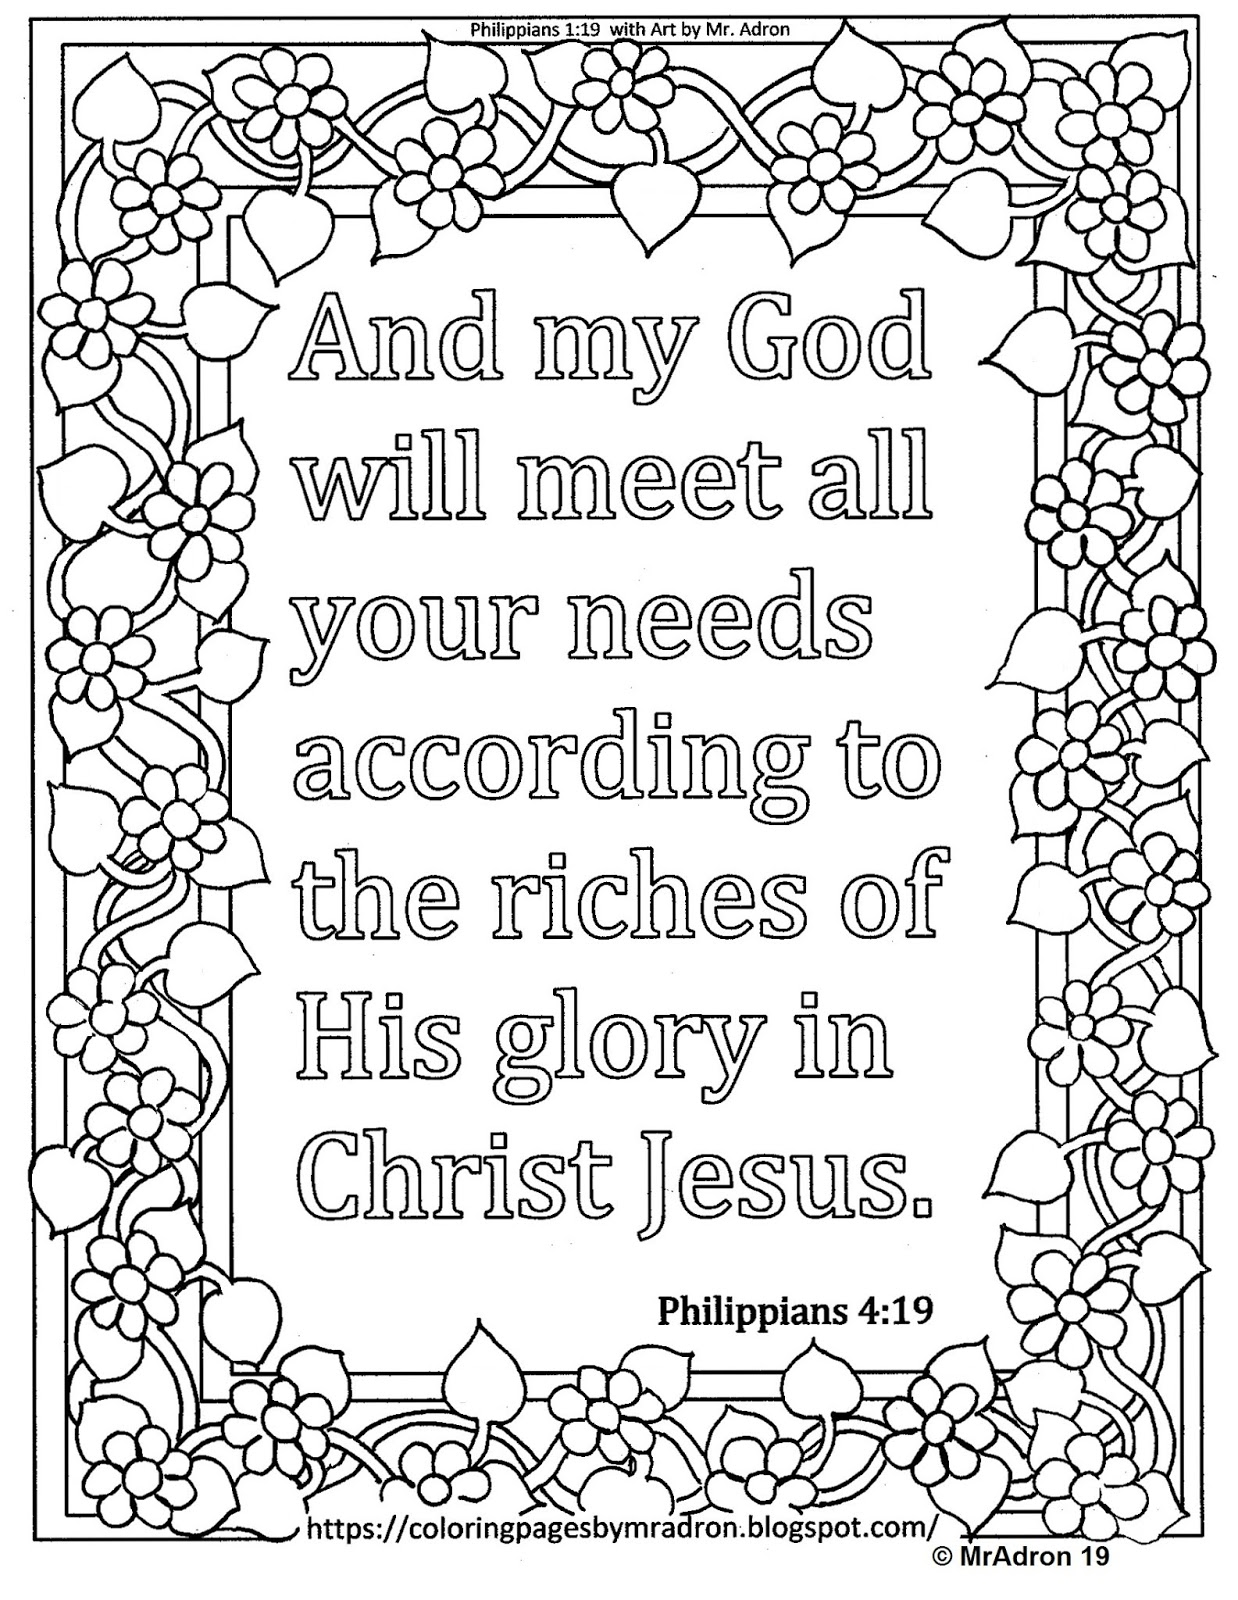 philippians 4 8 coloring page coloring pages for kids by mr adron free philippians 4 philippians 4 8 page coloring